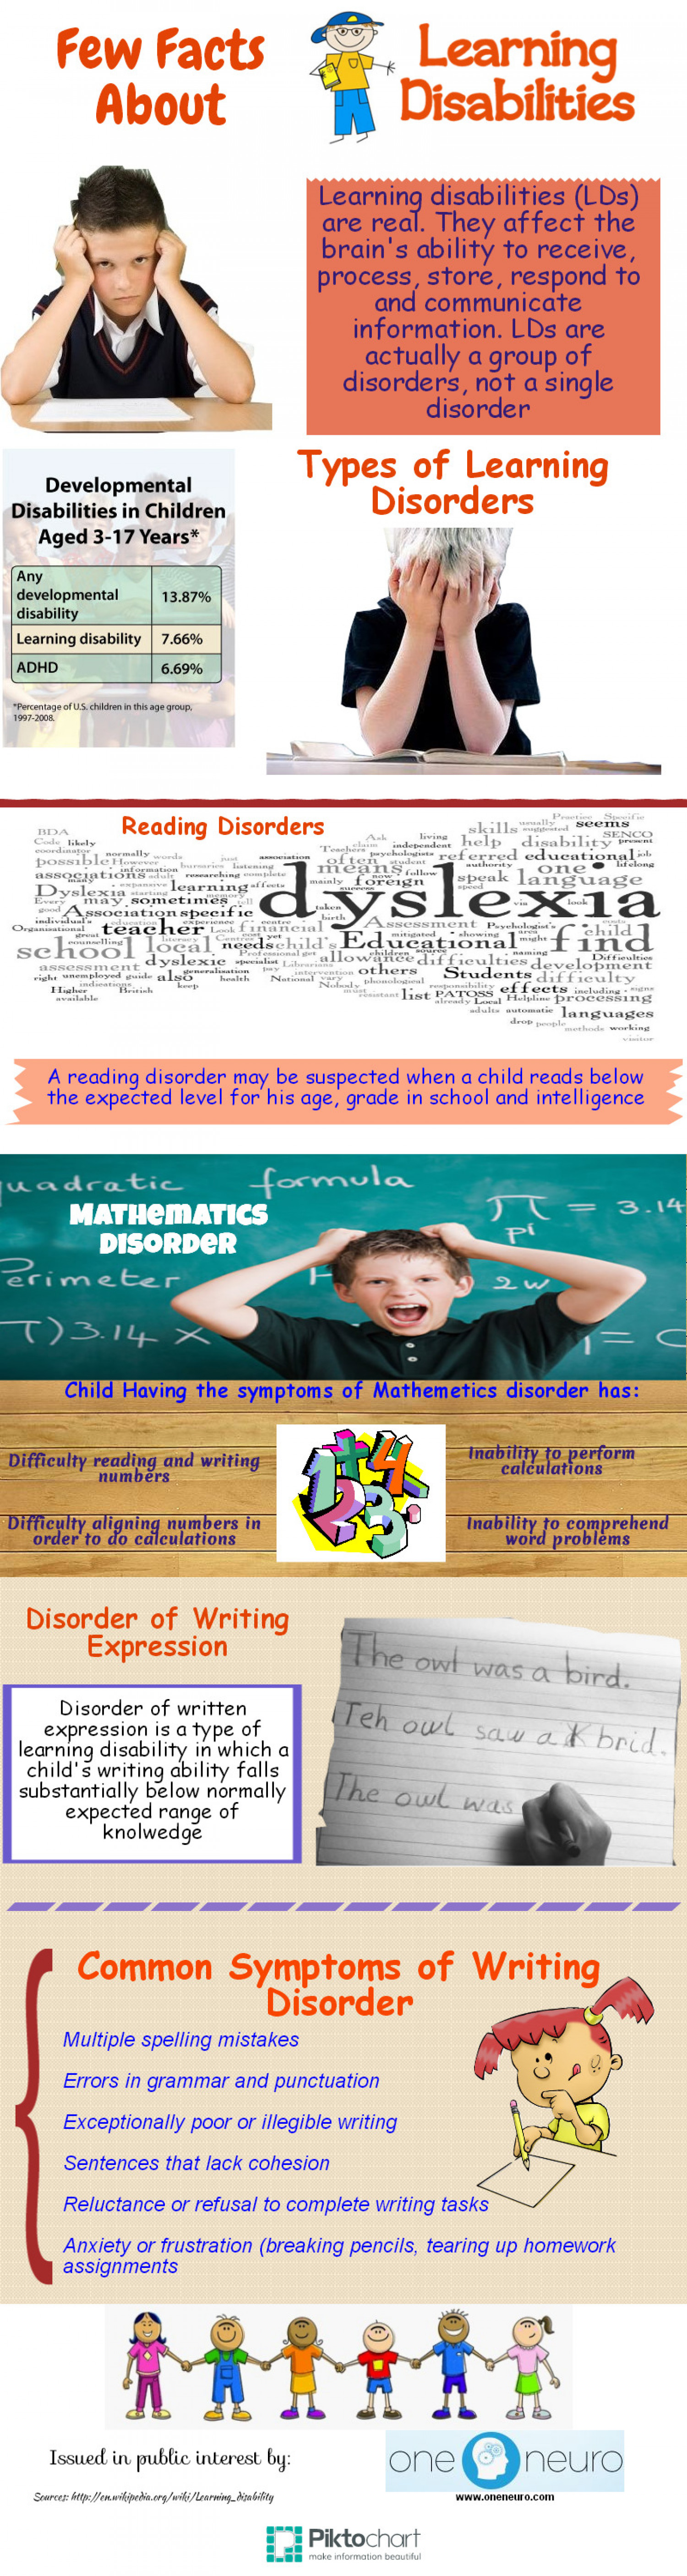 Few facts about learning disabilities Infographic